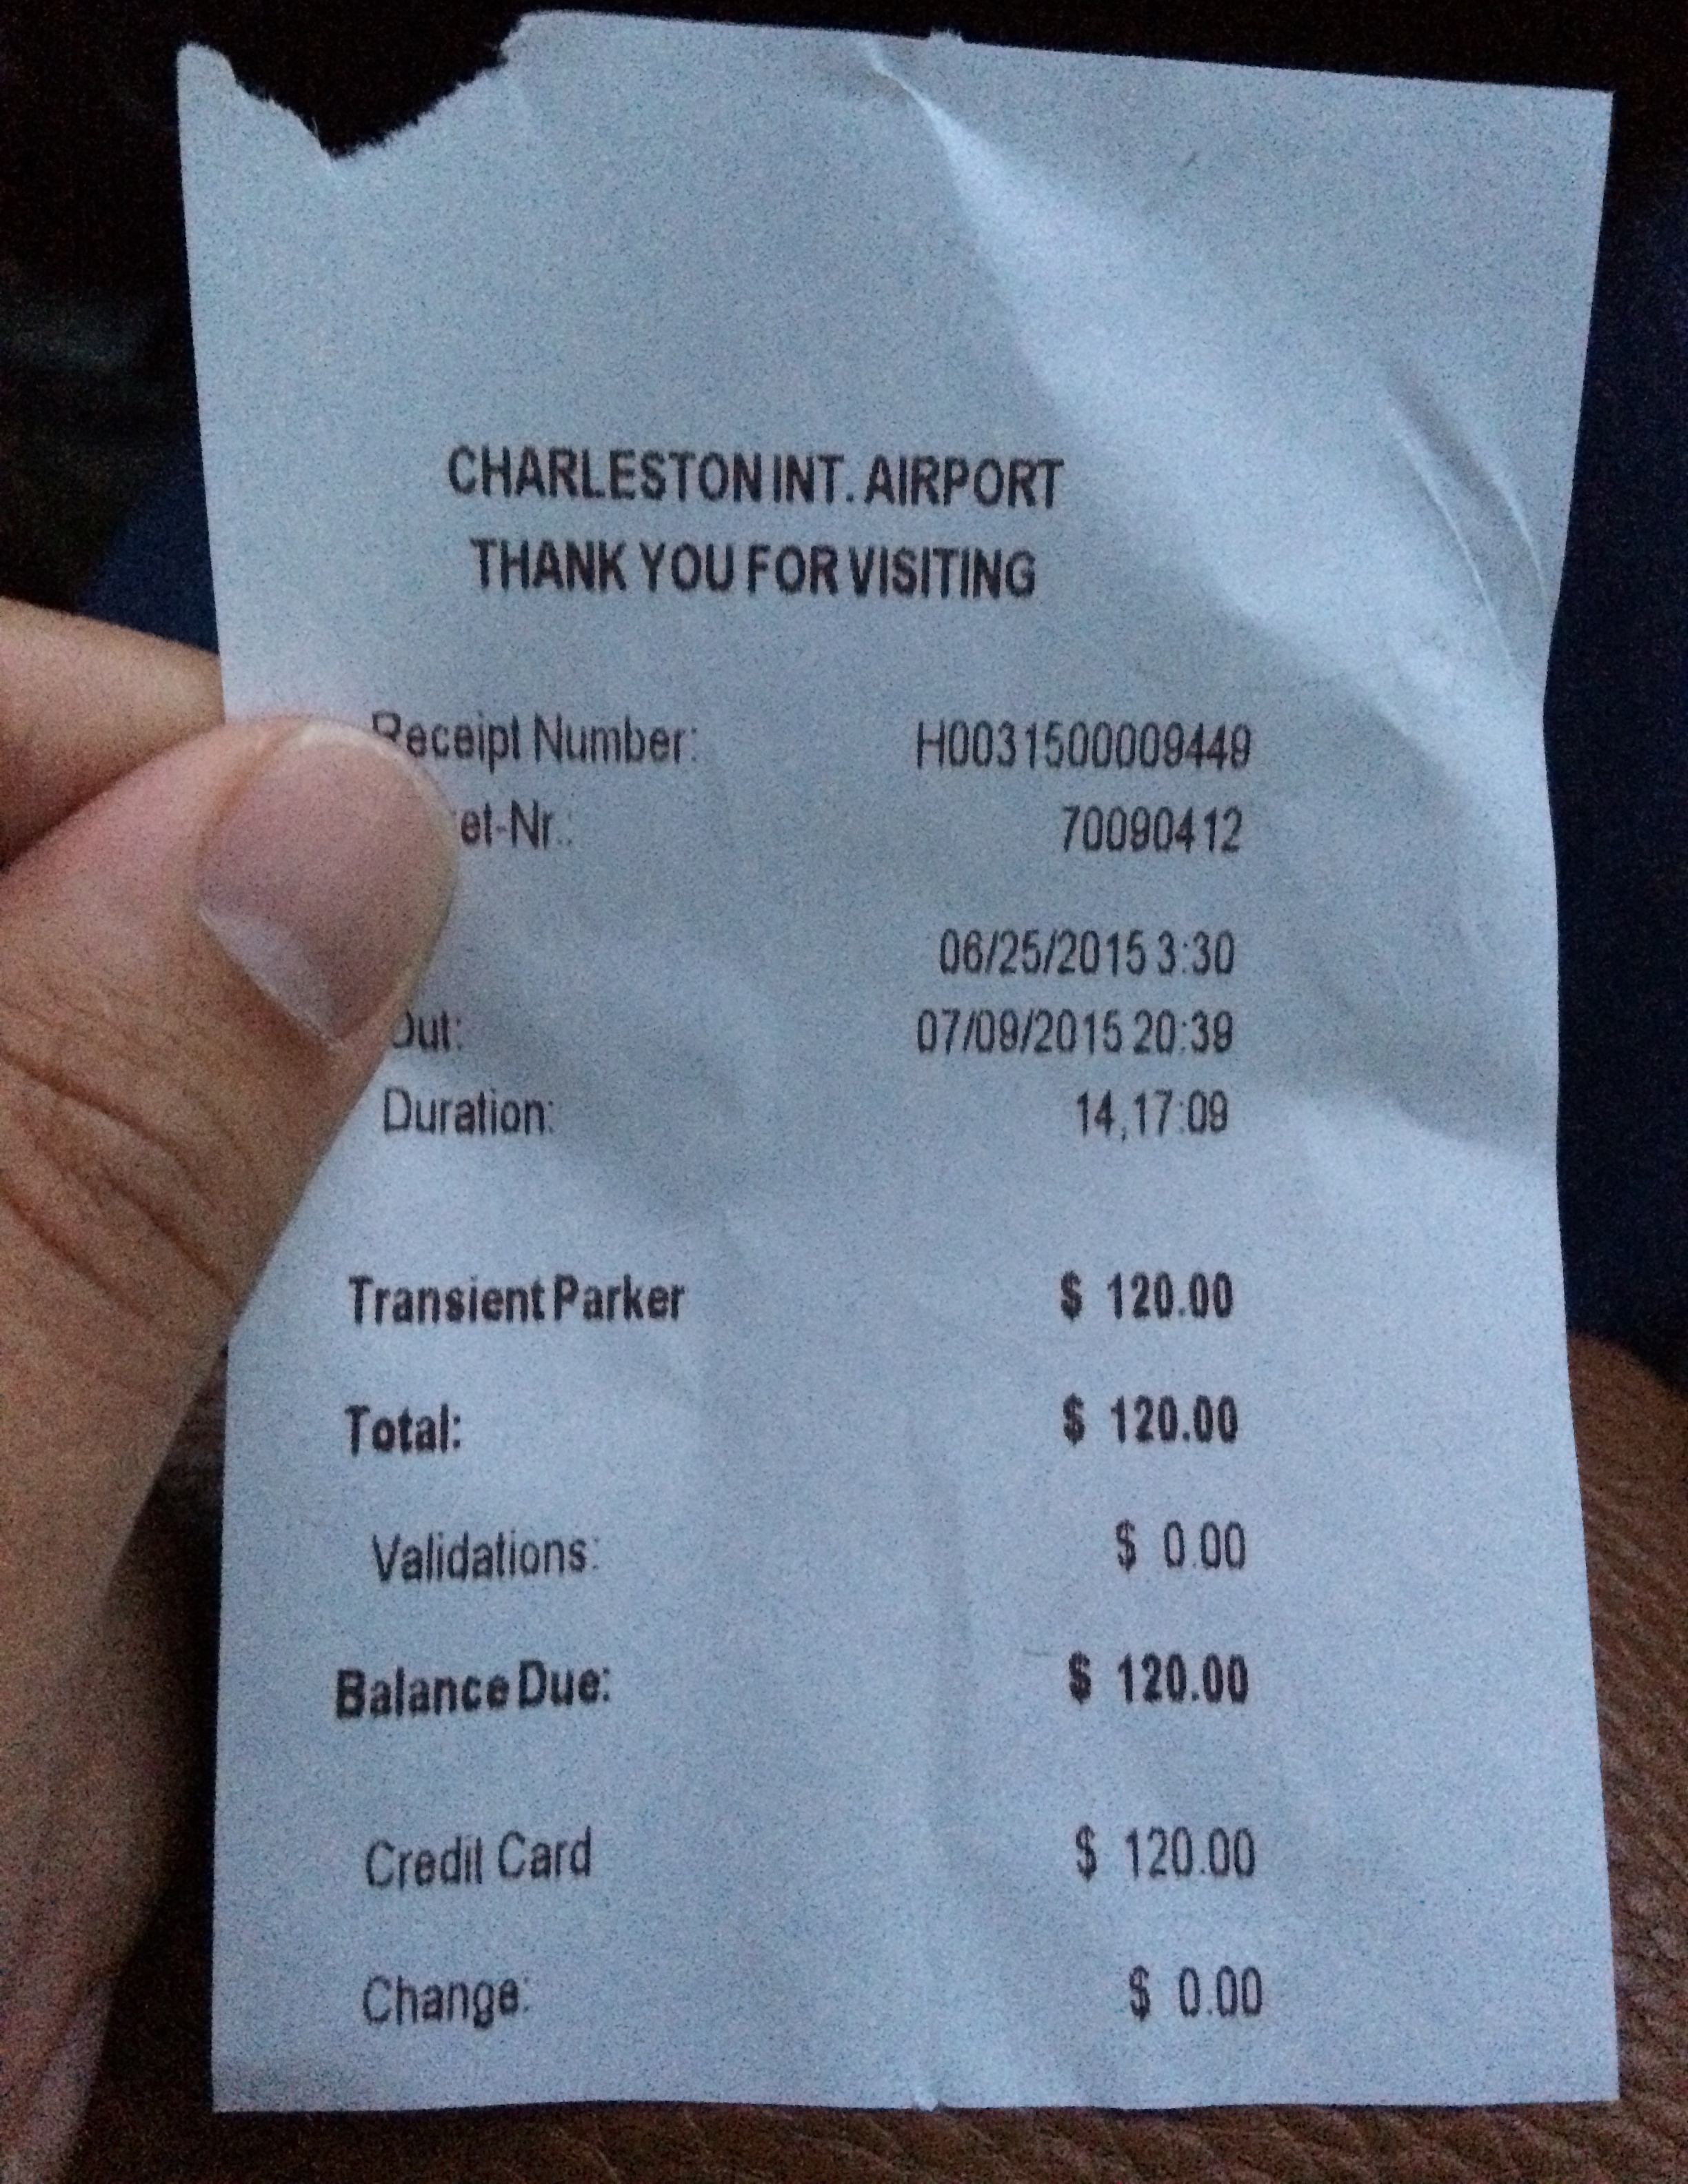 The cost to keep Sidney's vehicle parked at the Charleston Airport. Thanks Delta!